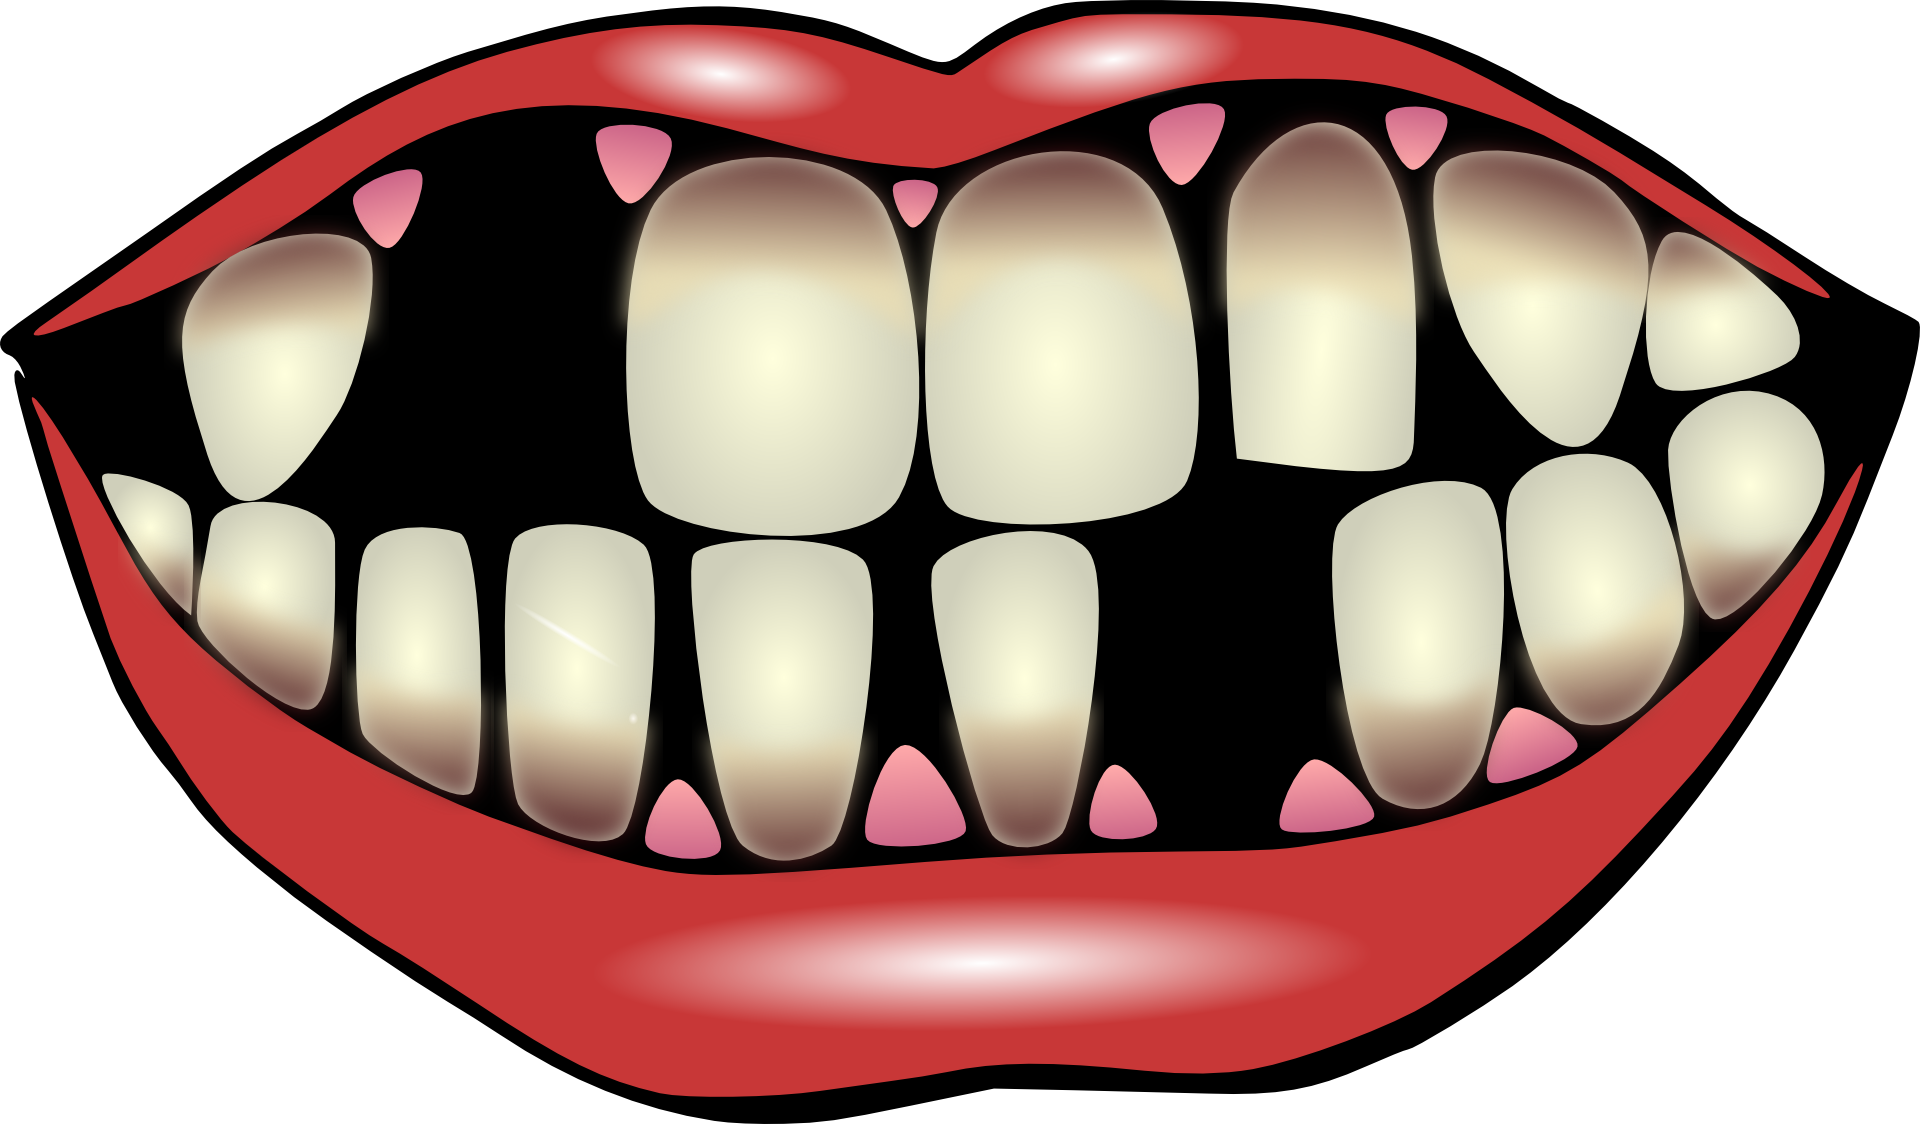 Tooth oral health